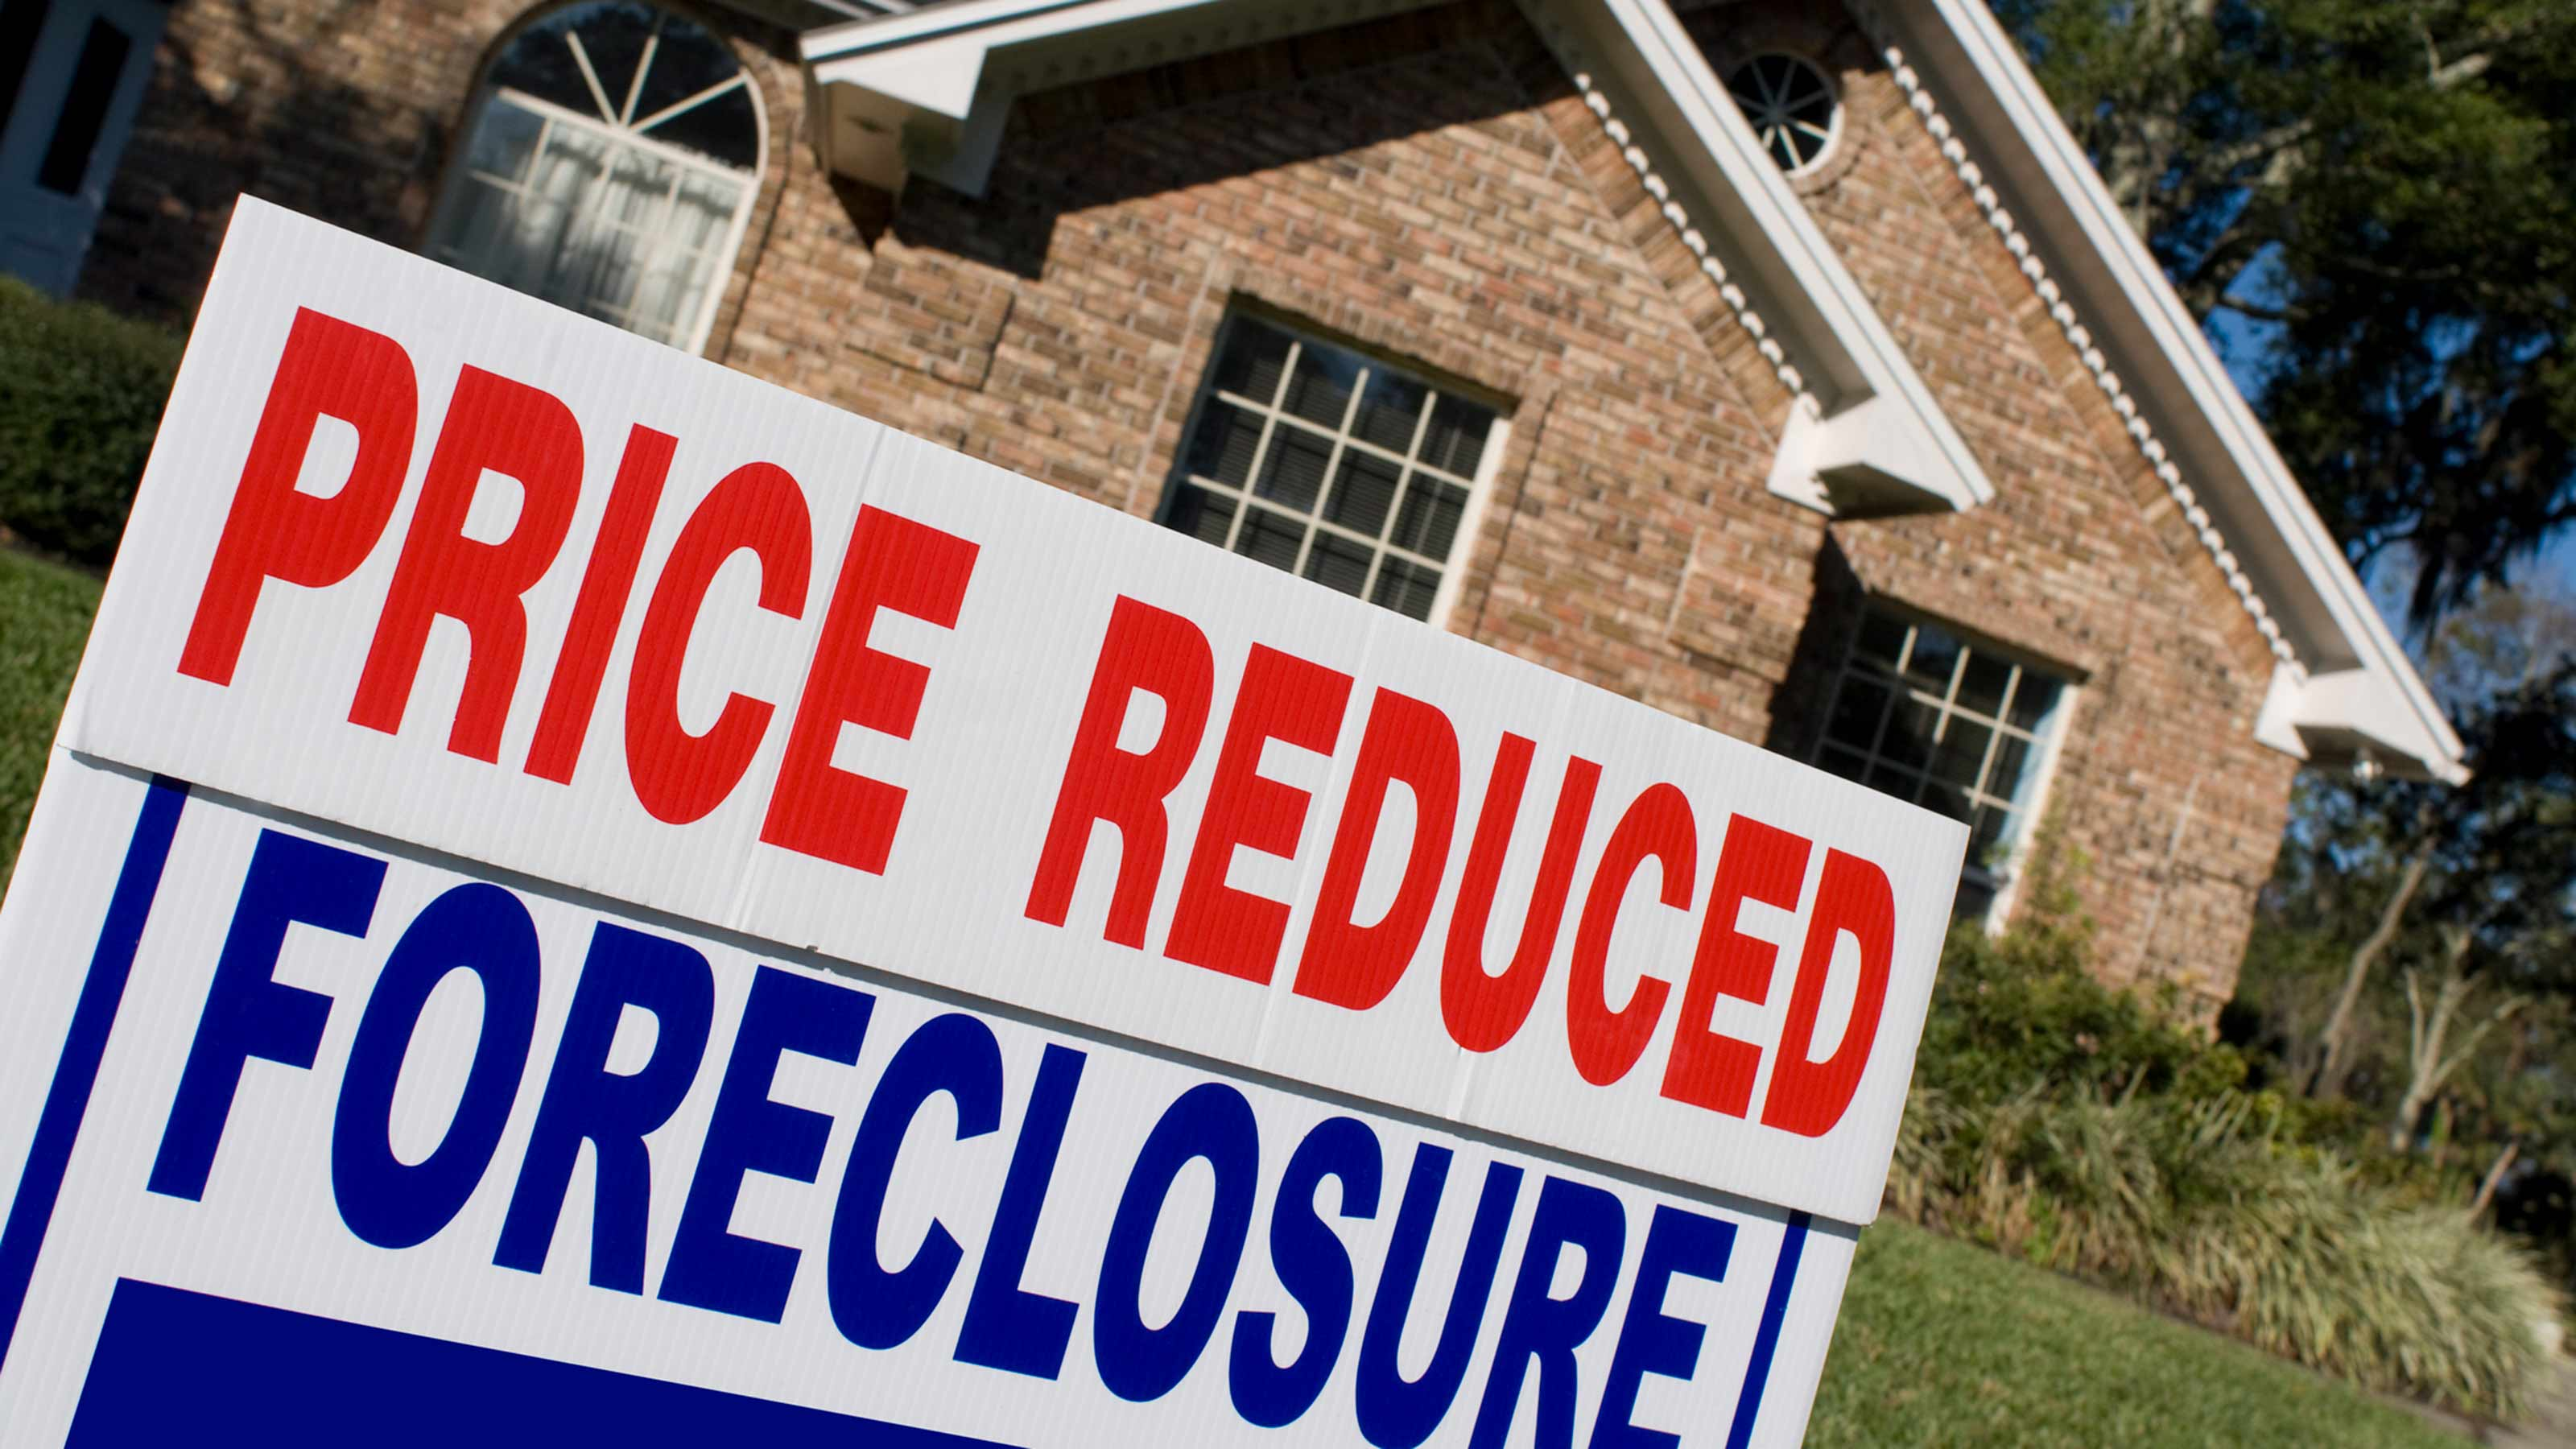 15 Best Foreclosure Sites for Finding Properties | Kiplinger